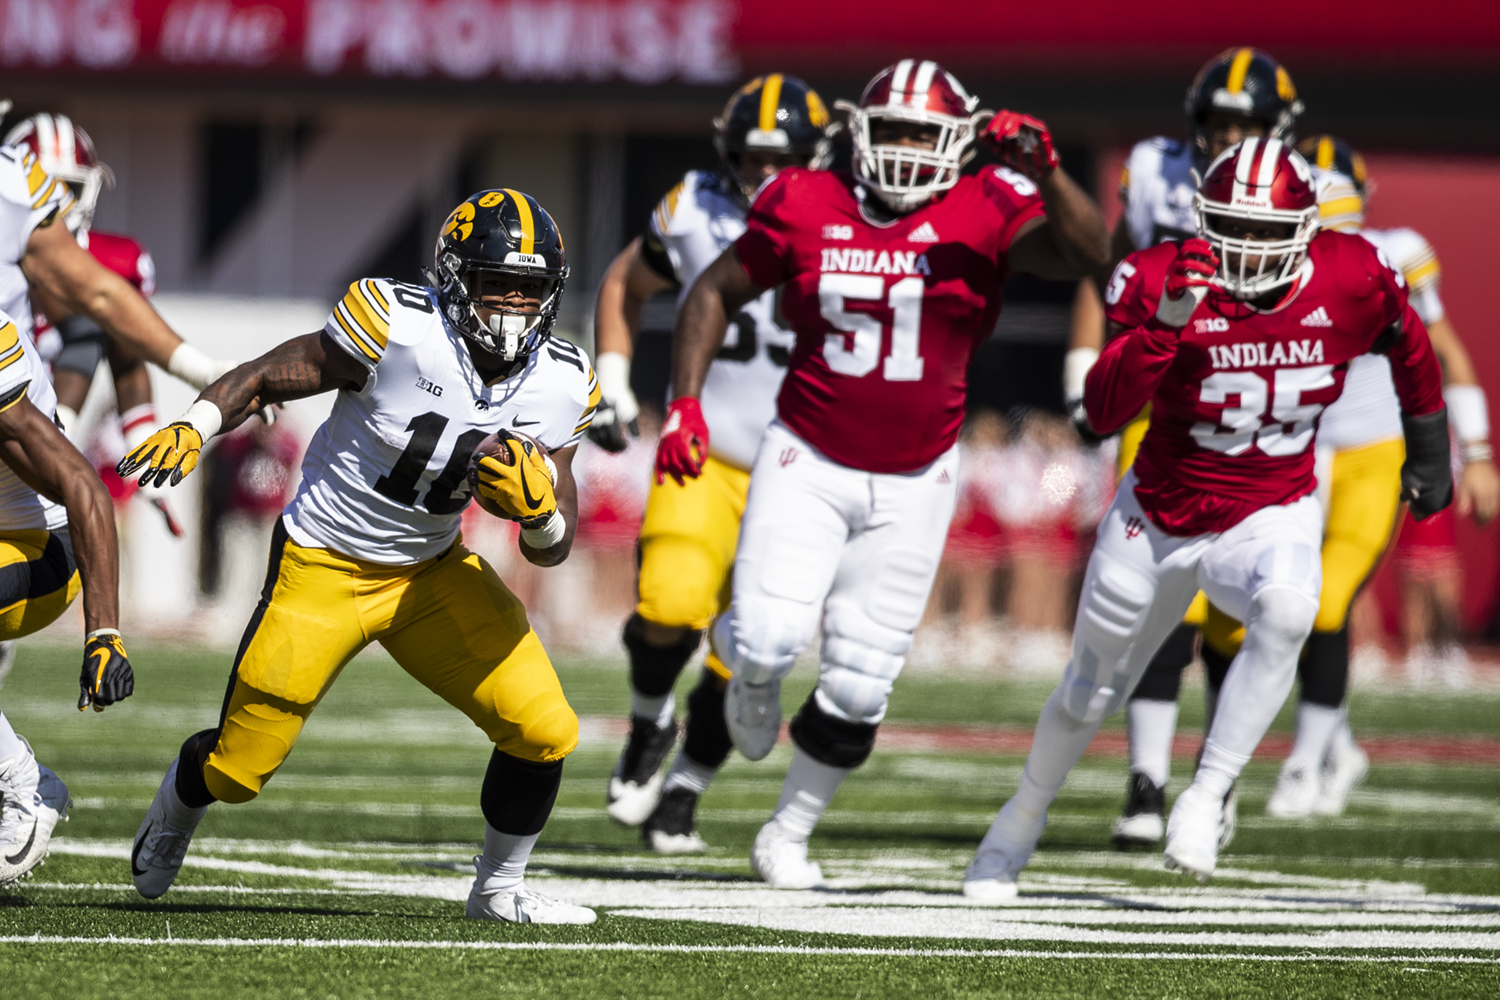 Iowa running back Mekhi Sargent carries the ball during Iowa's game against Indiana at Memorial Stadium in Bloomington on Saturday, October 13, 2018. The Hawkeyes lead the Hoosiers 21-10 at the half.